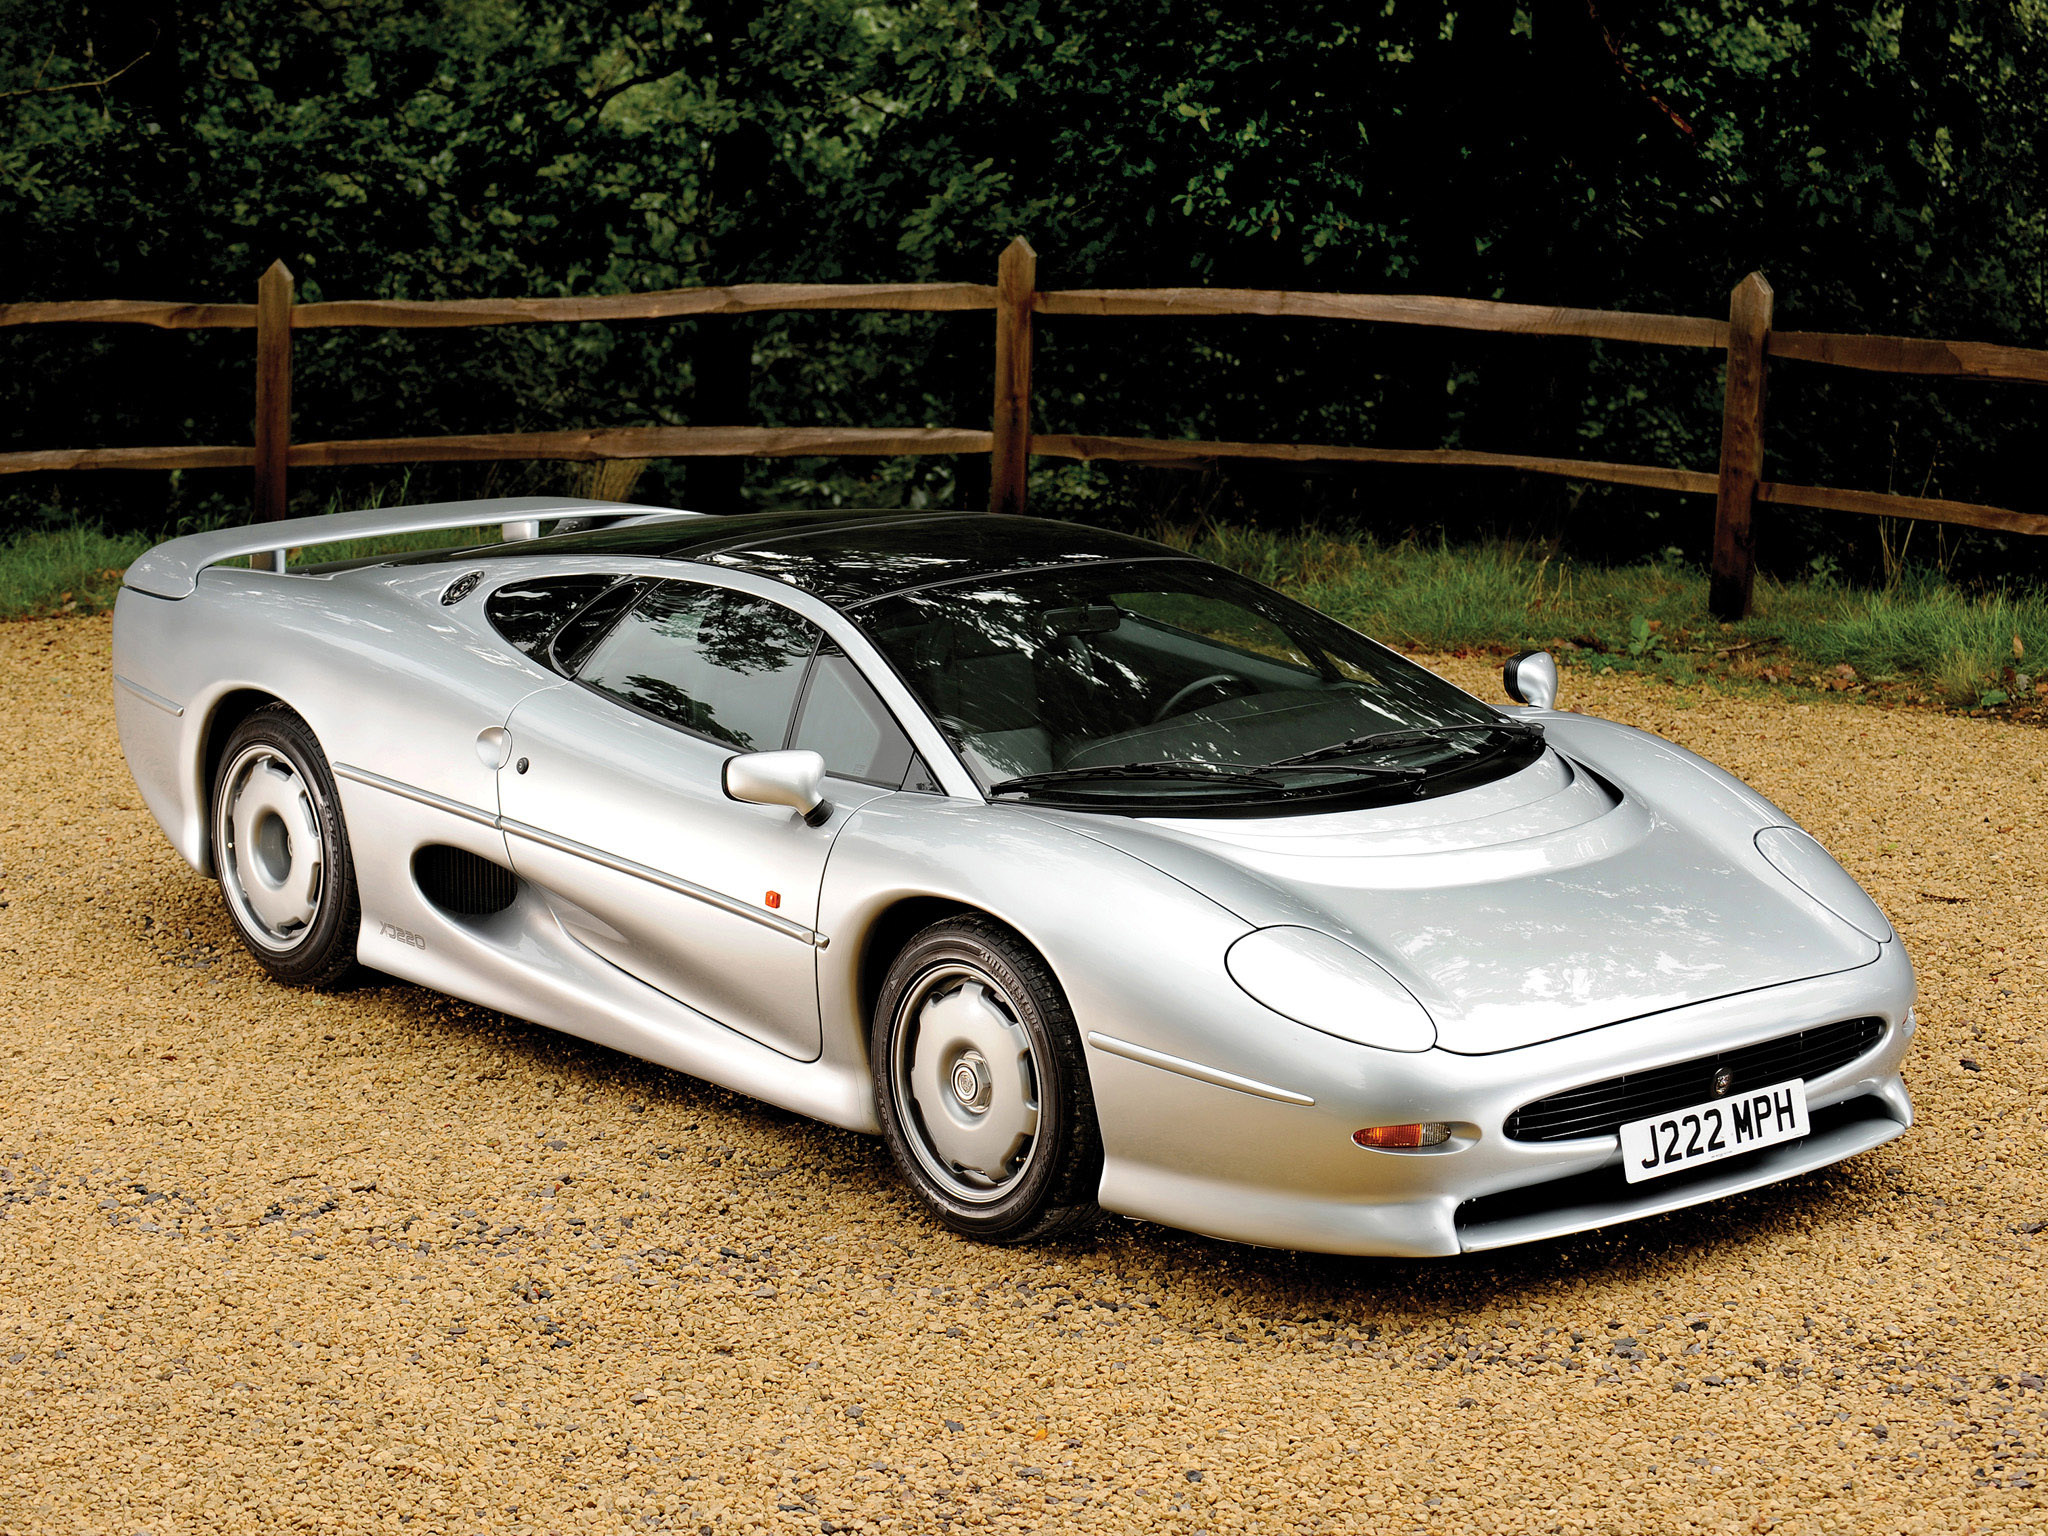 Jaguar xj220 photo - 3